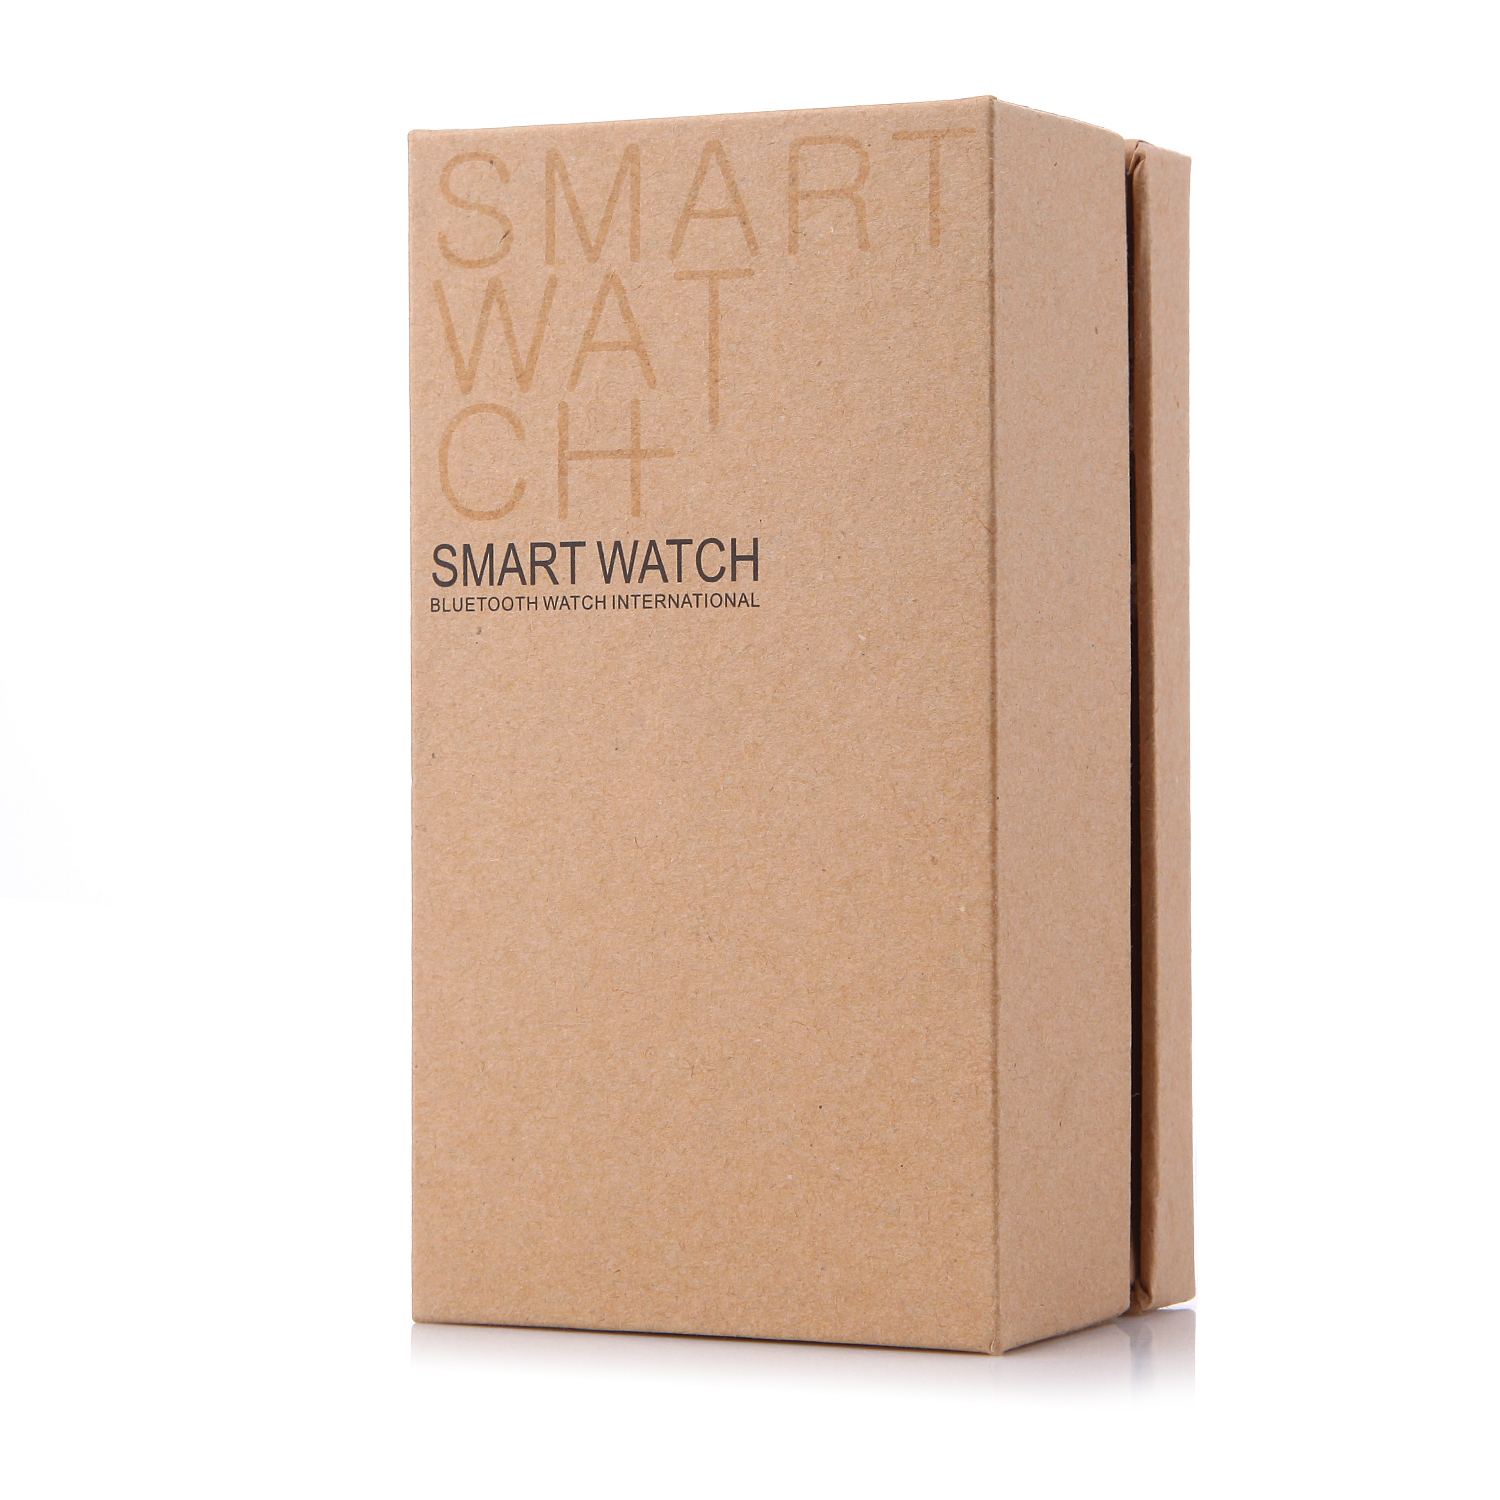 RWATCH R7 Bluetooth Smart Remote Control Watch for iOS Android Smartphones Tarnish